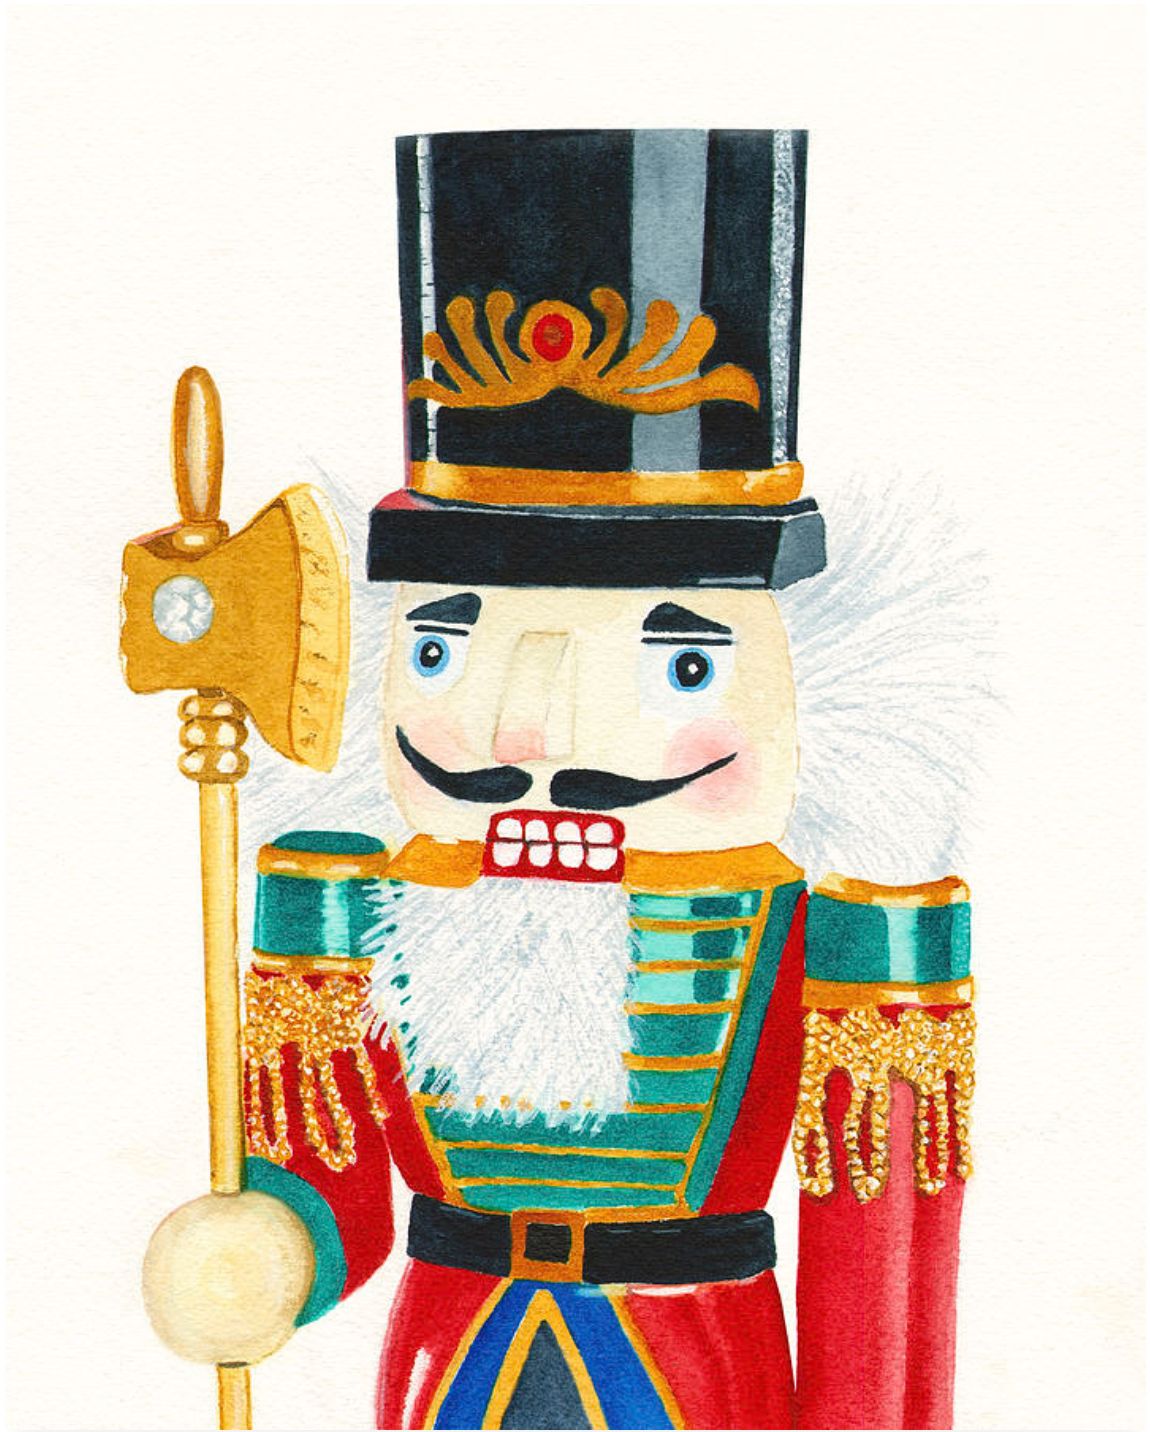 Christmas Cards Colorful Nutcracker Christmas Card Art Watercolor Art Prints Nutcracker Christmas Card